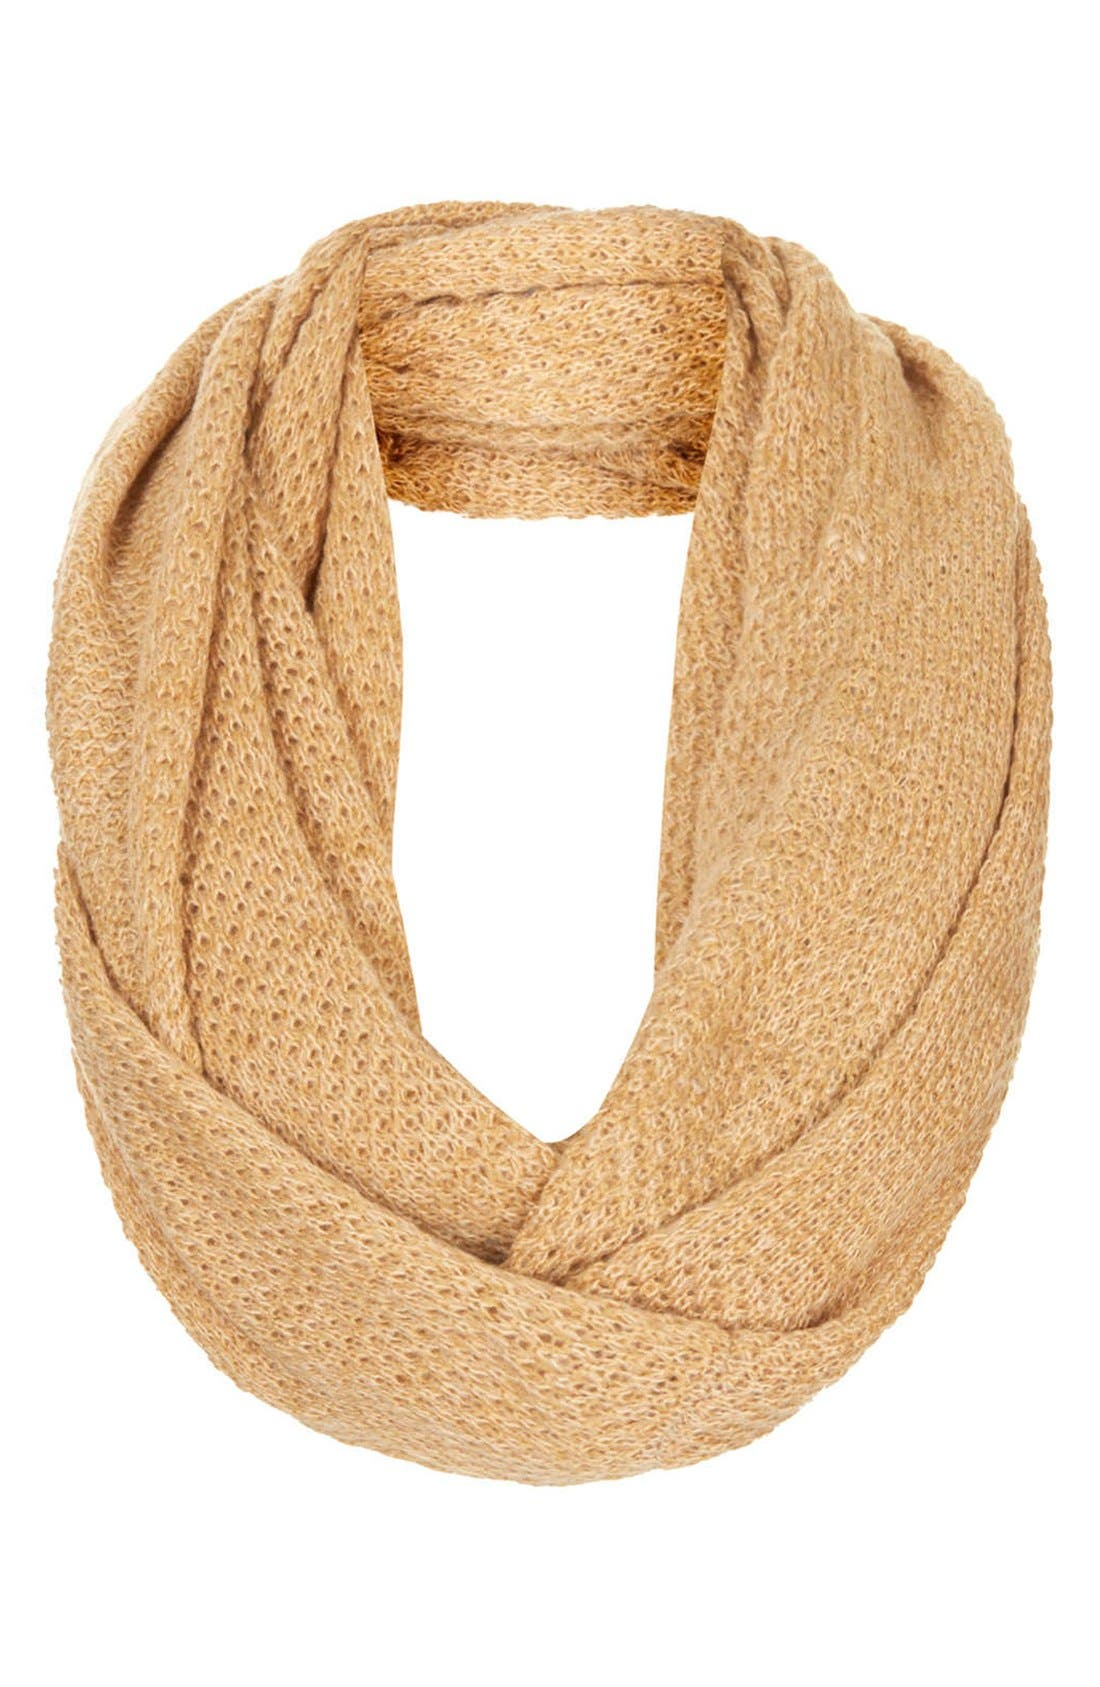 Basket Stitch Infinity Scarf,                             Main thumbnail 1, color,                             252